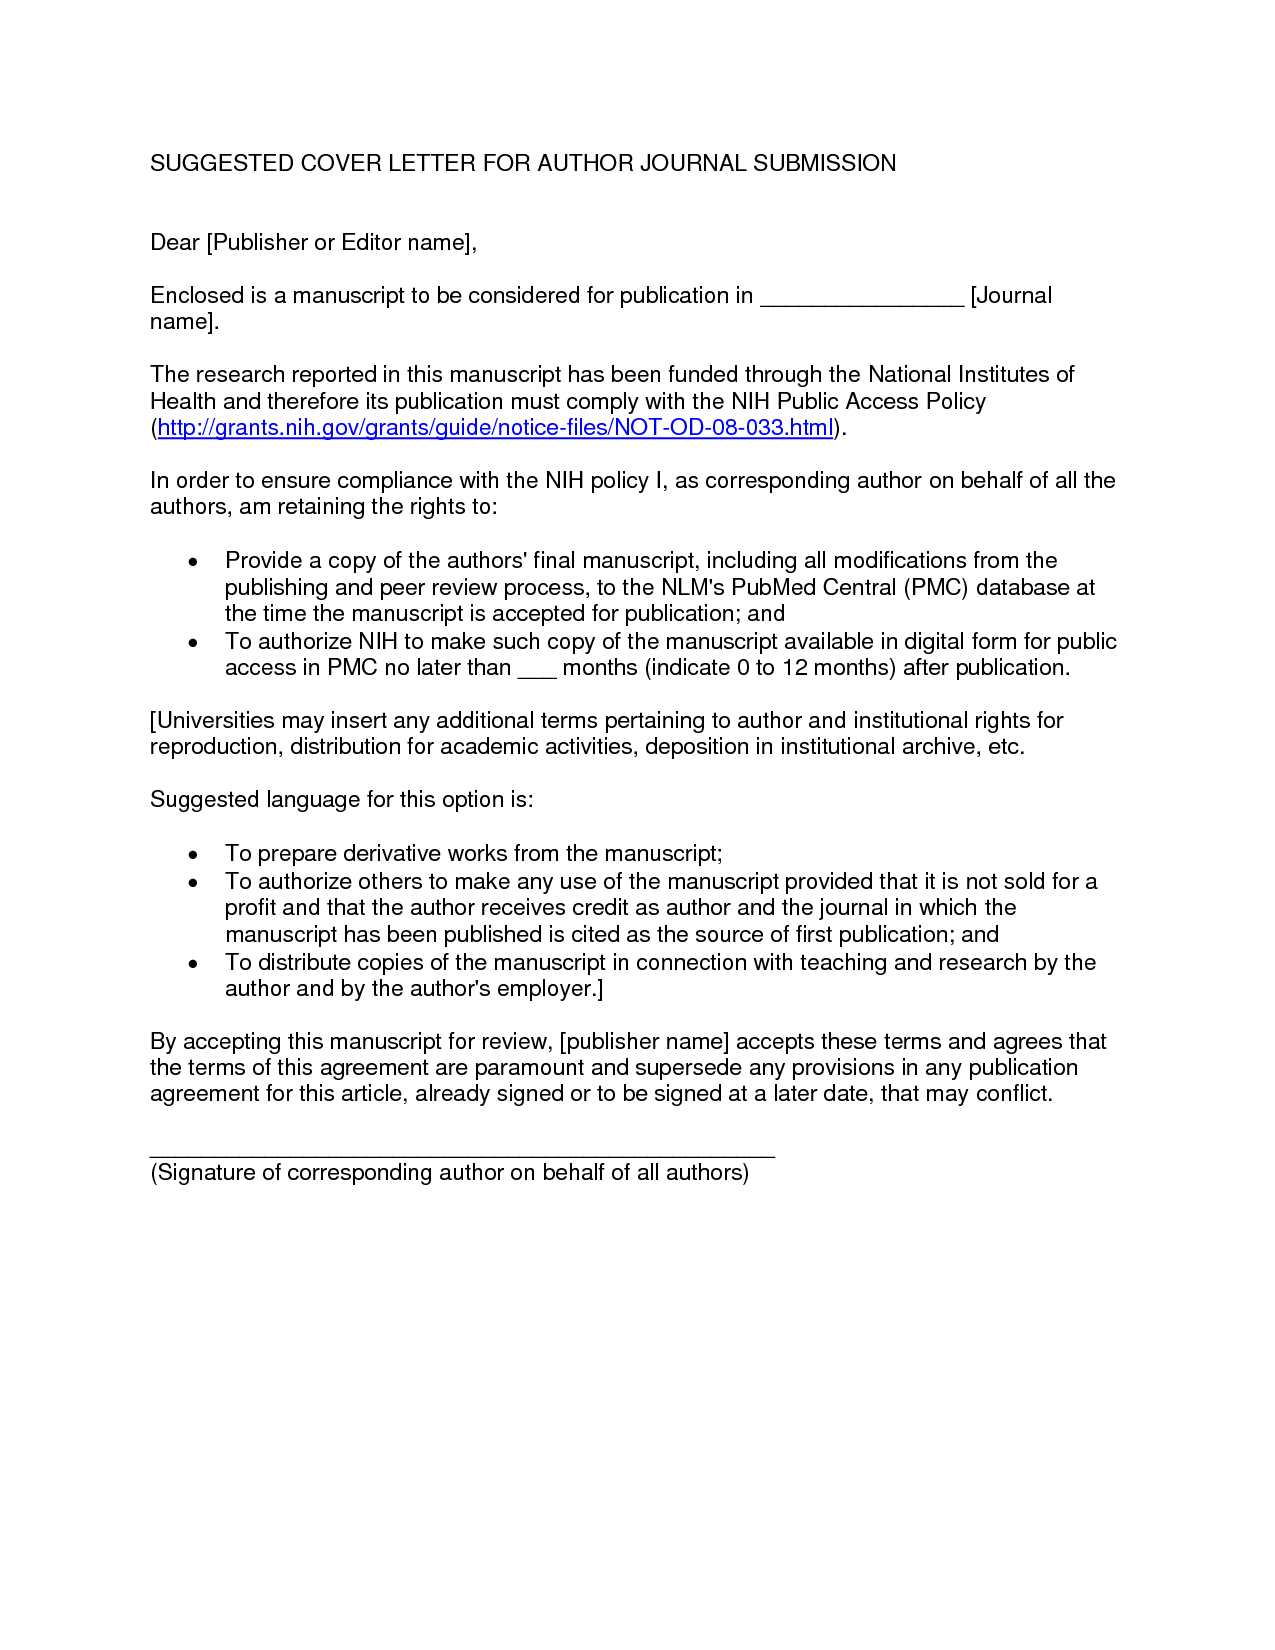 Illustrator Cover Letter Template - Charming Cover Letter Scientific Journal In Cover Letter Examples